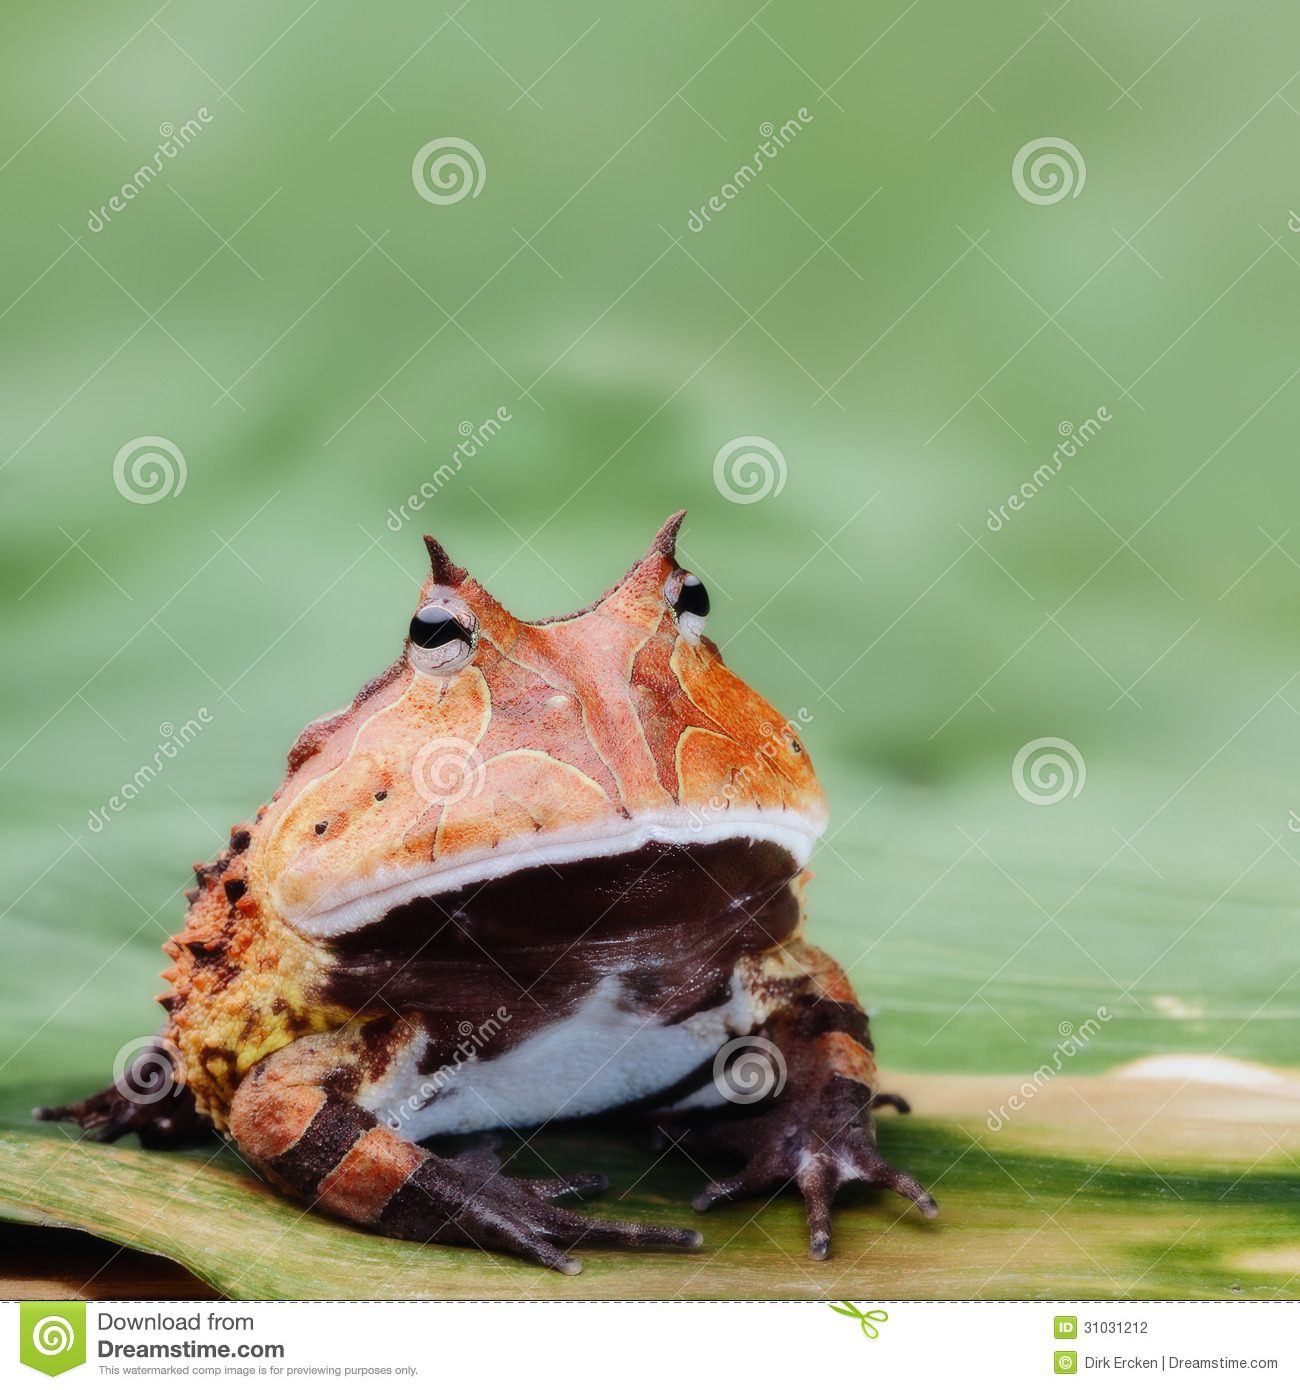 Pacman Frog Or Horned Toad Amazon Rain Forest Stock Photo - Image of ...